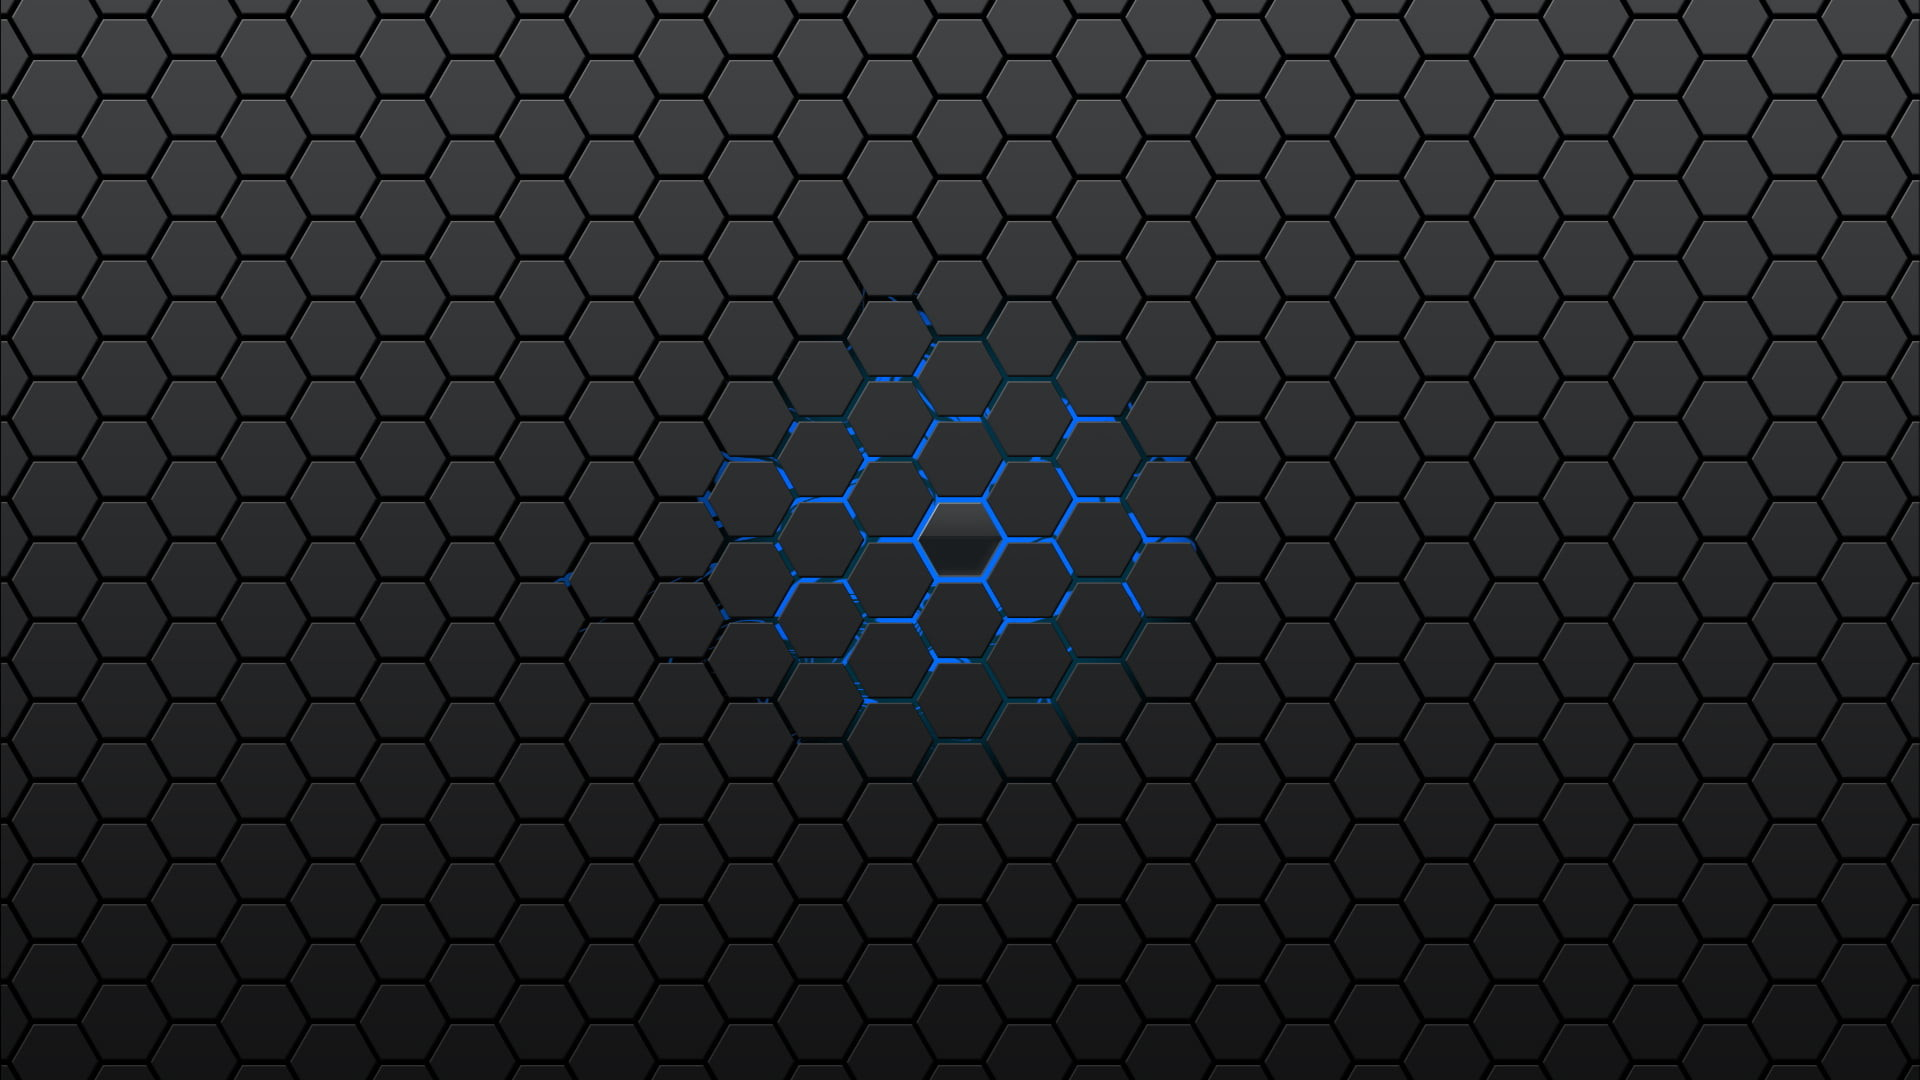 Res: 1920x1080, gray and blue honeycomb graphic HD wallpaper